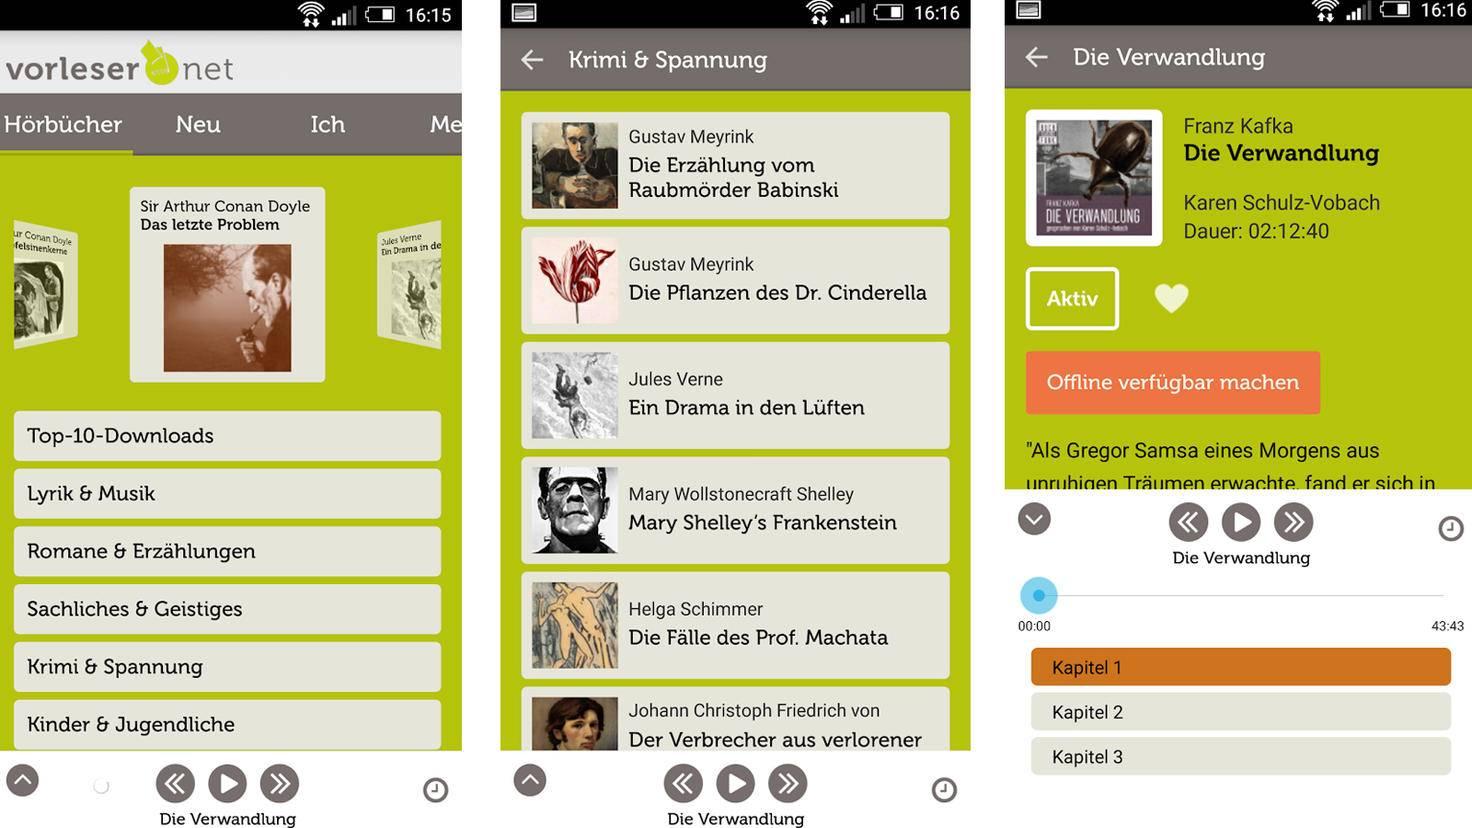 Vorleser-Google PlayStore-publishAir UG